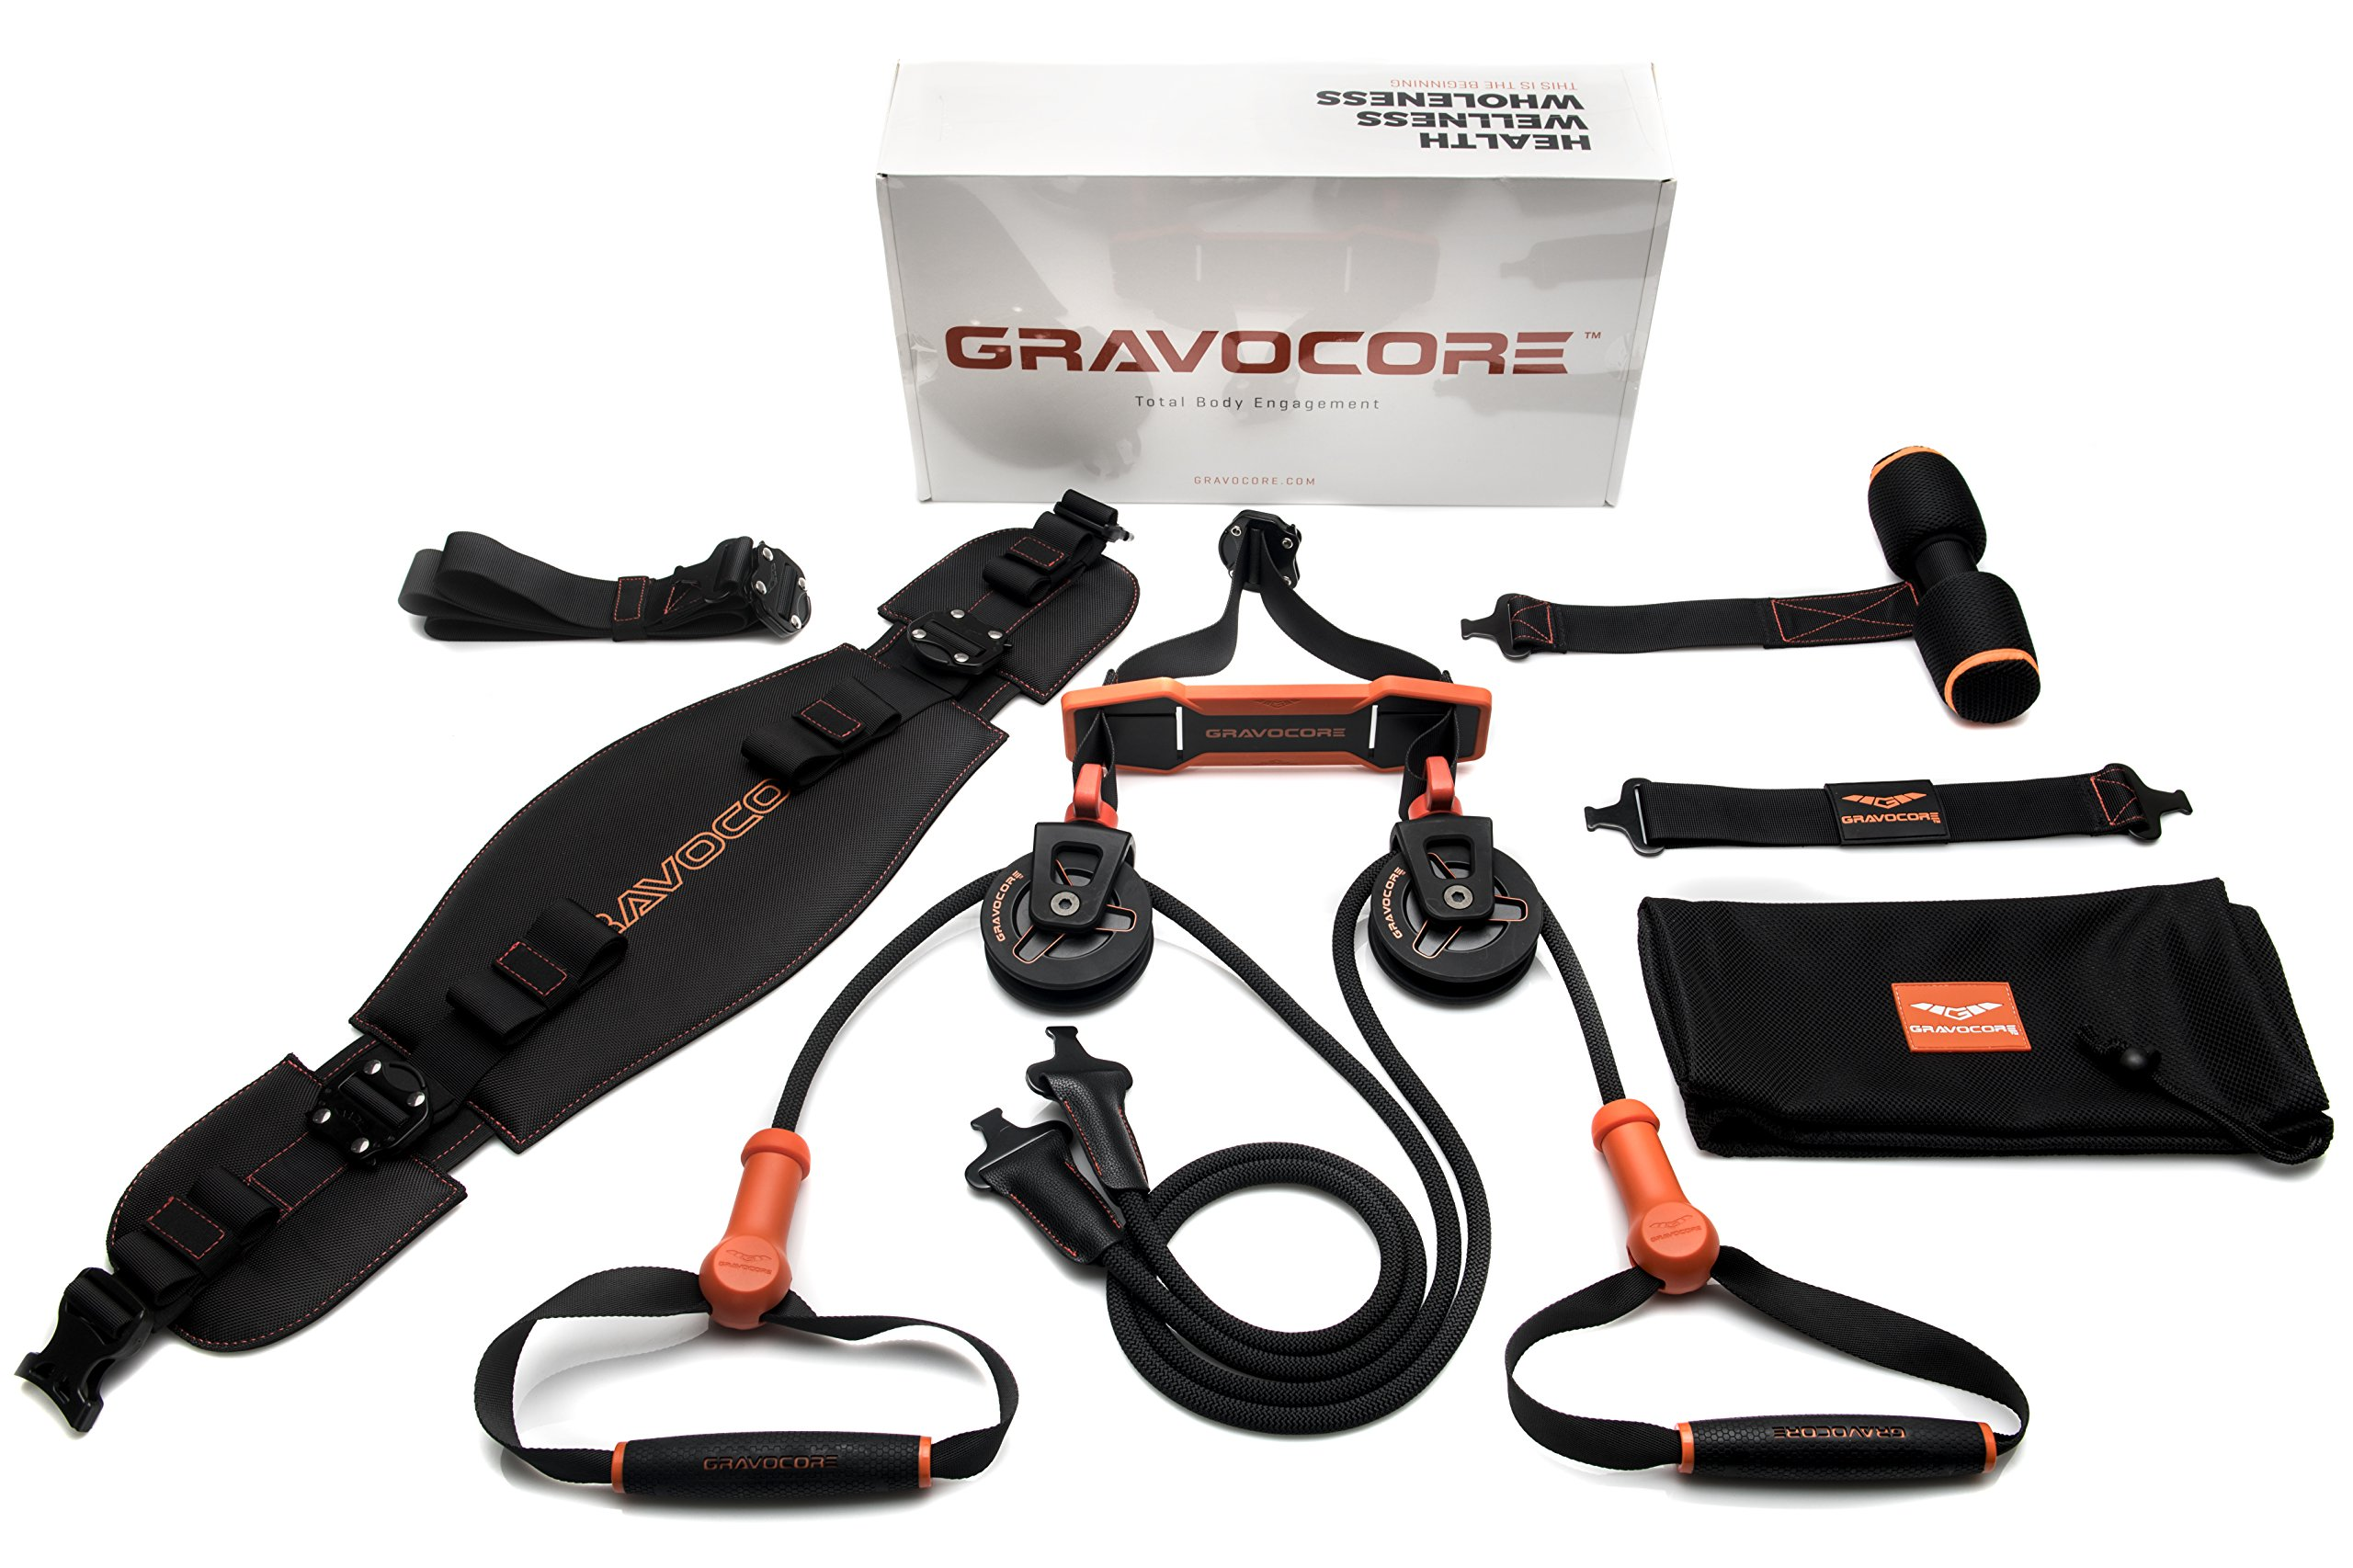 Gravocore Revolutionary Training Machine | Build Muscle & Burn Fat | Portable & Lightweight | Workout In Less Time | Variable Intensity Routines | Easier On Joints & Back | Digital Workouts Included by Gravocore